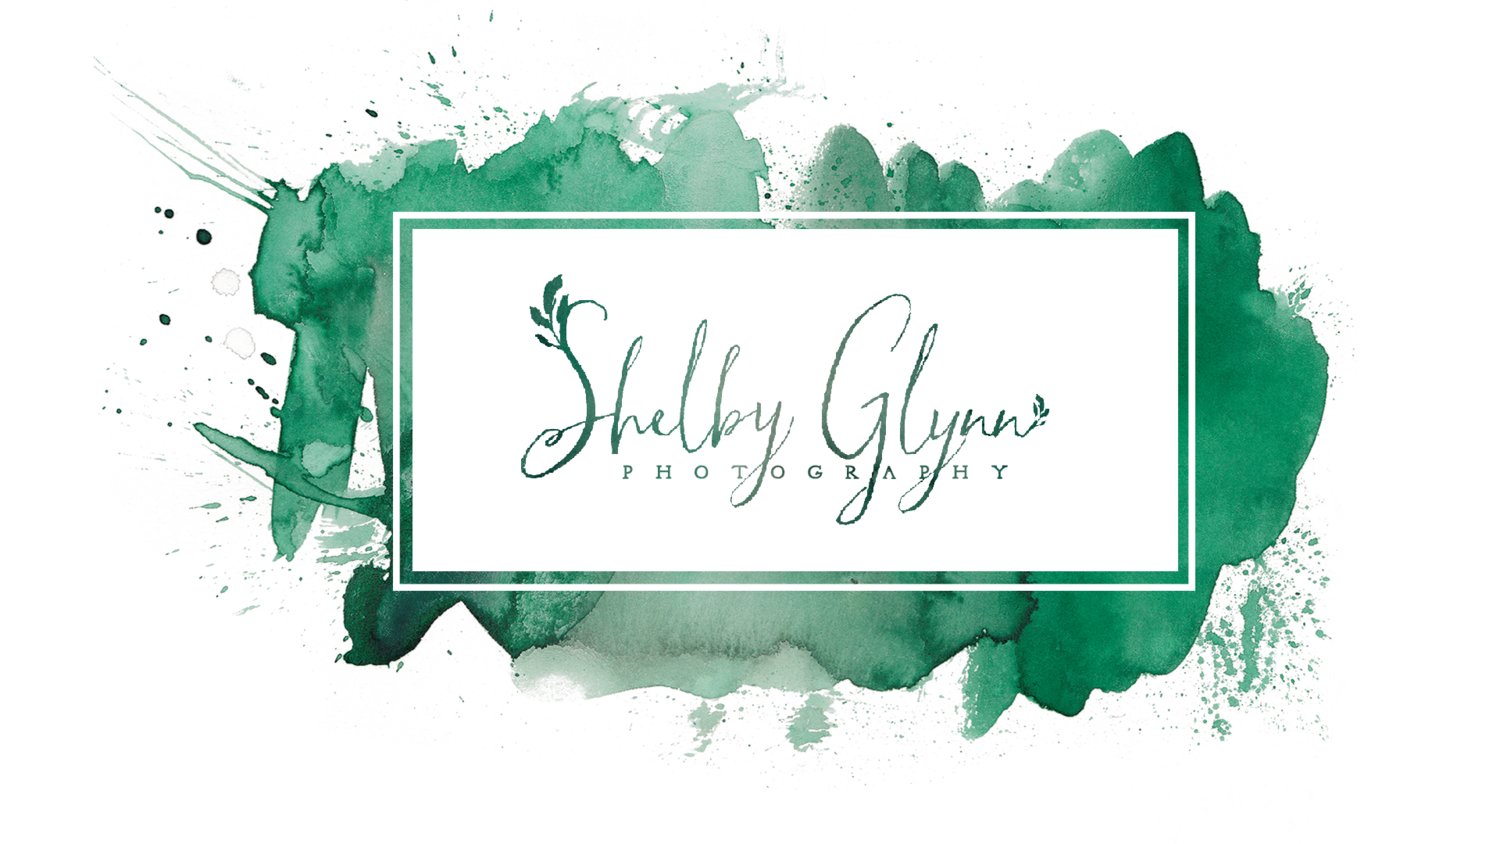 Shelby Glynn Photography  | Wedding, Elopement and Portrait Photographer  |  Tampa, FL